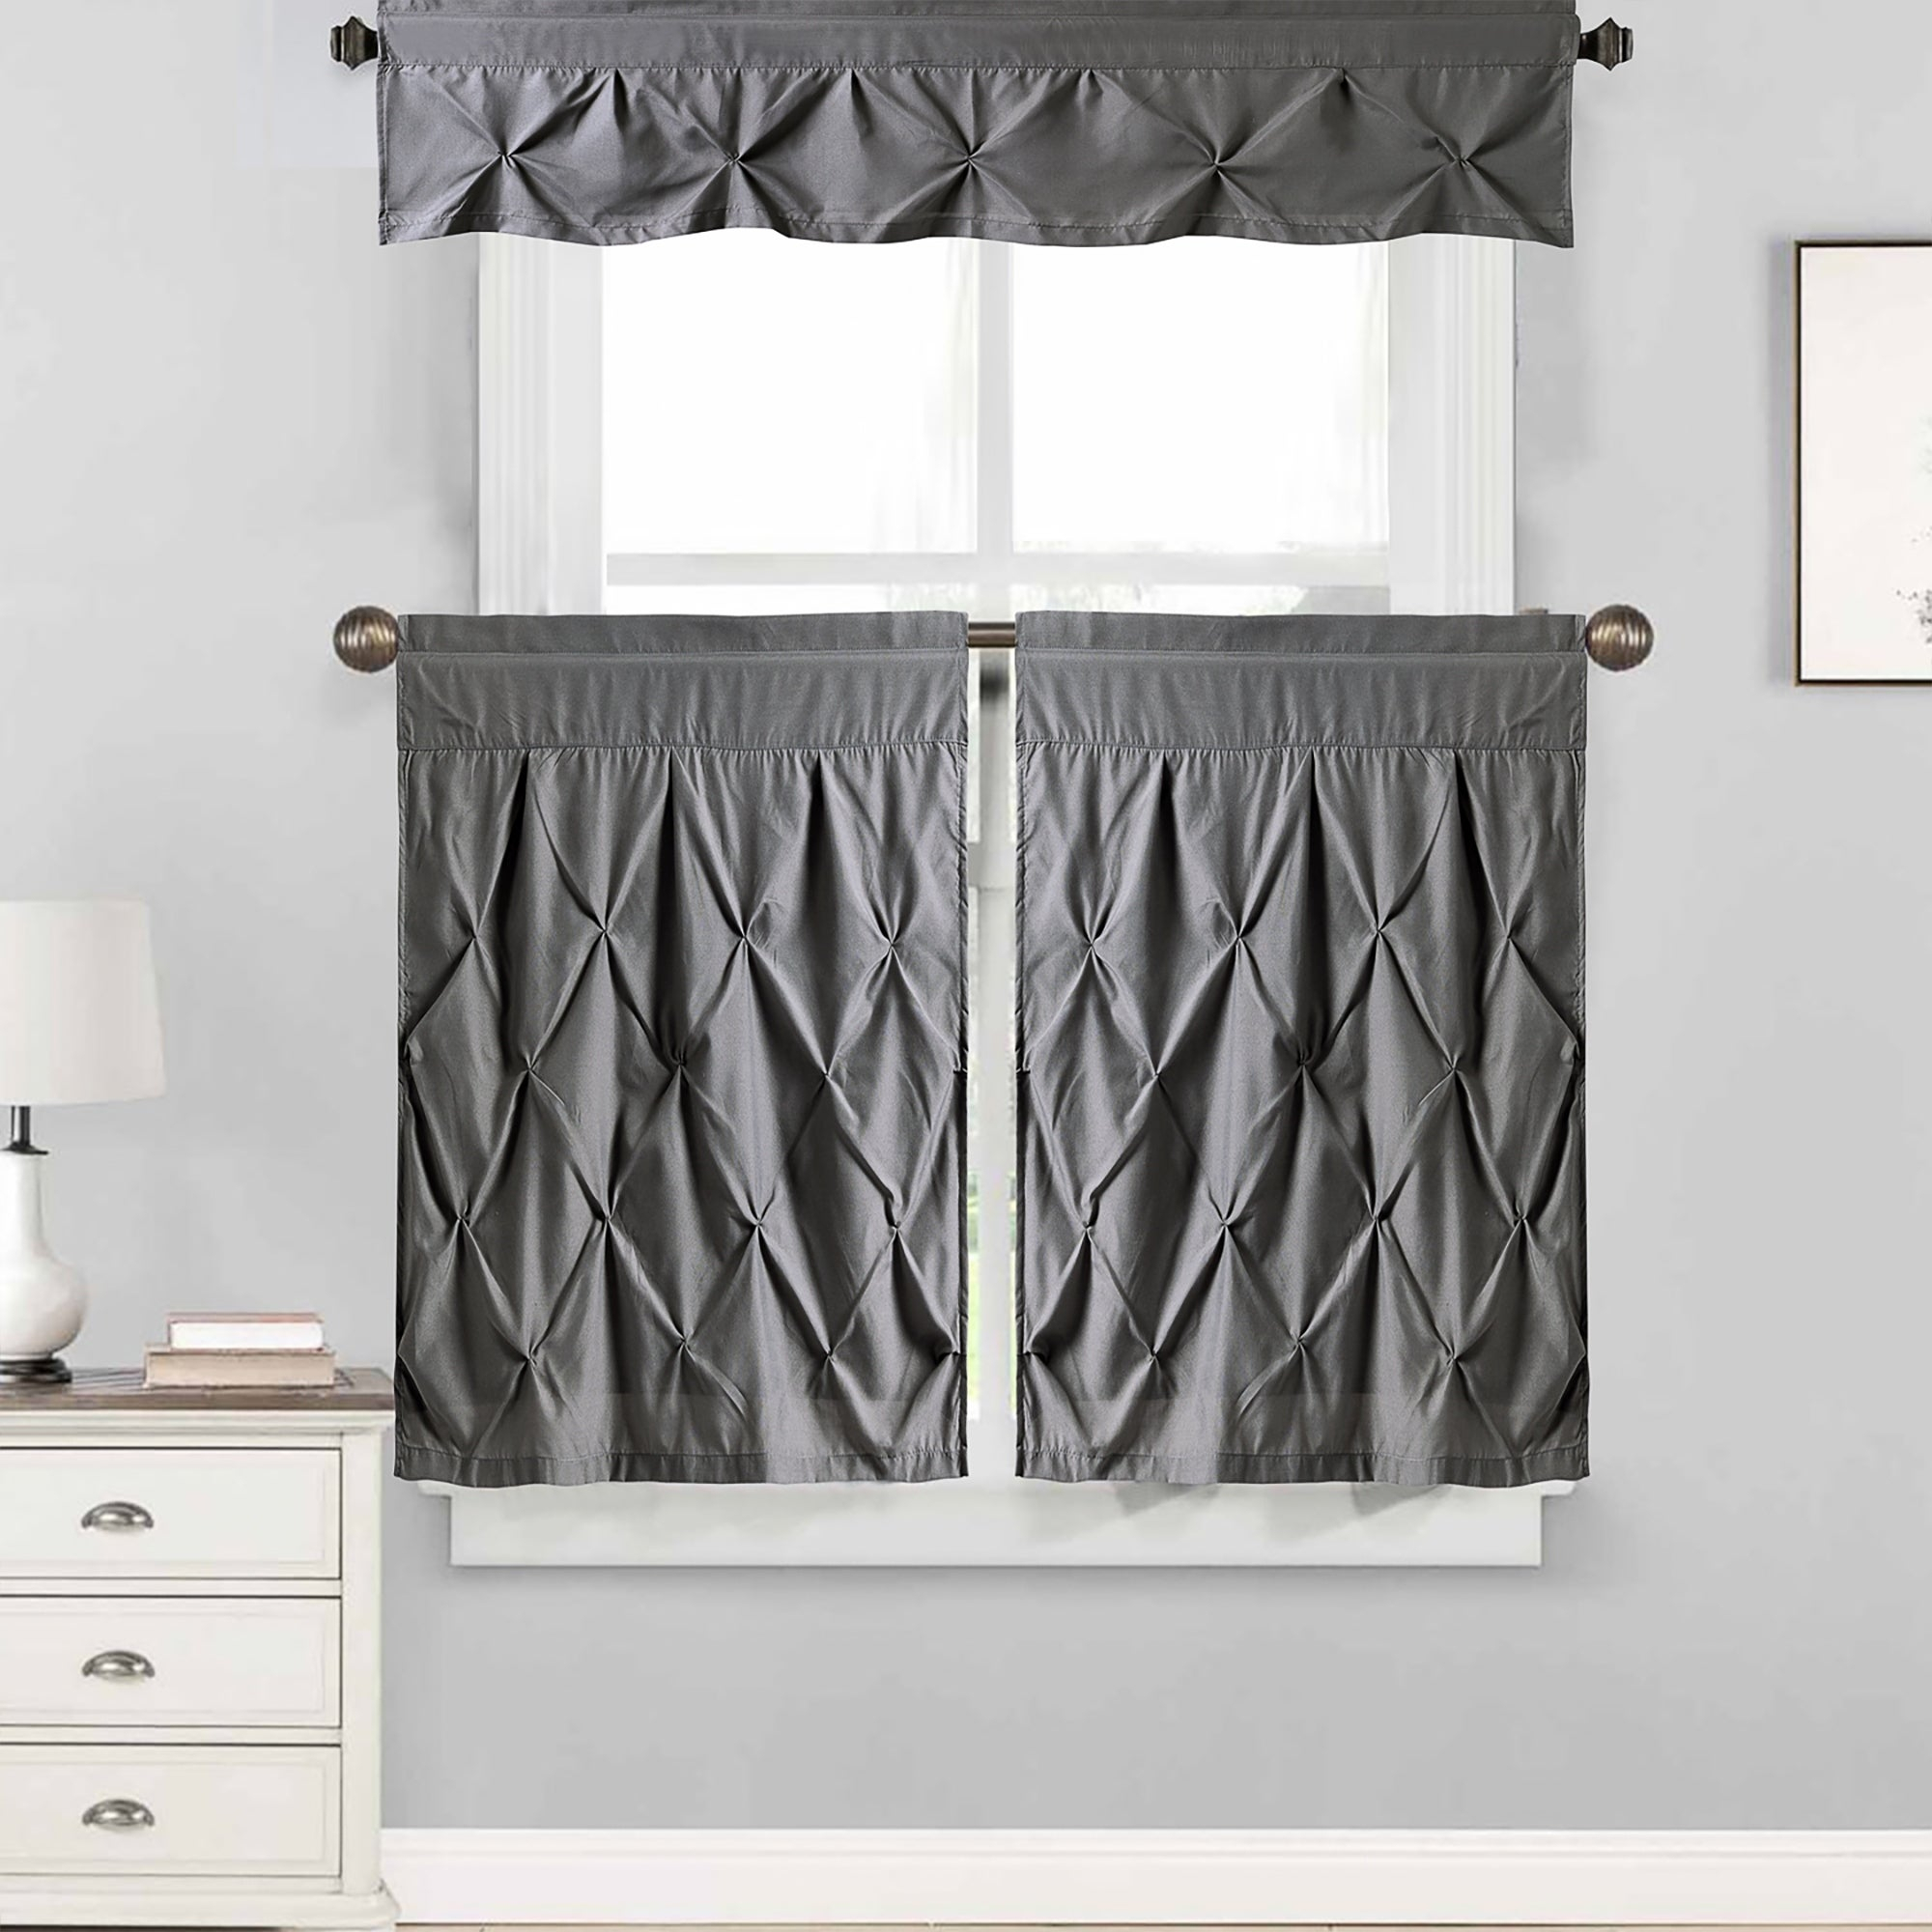 "Hudson Pintuck Window Curtain Tier And Valance Set (24""l Or 36""l) Grey Intended For Grey Window Curtain Tier And Valance Sets (View 2 of 20)"